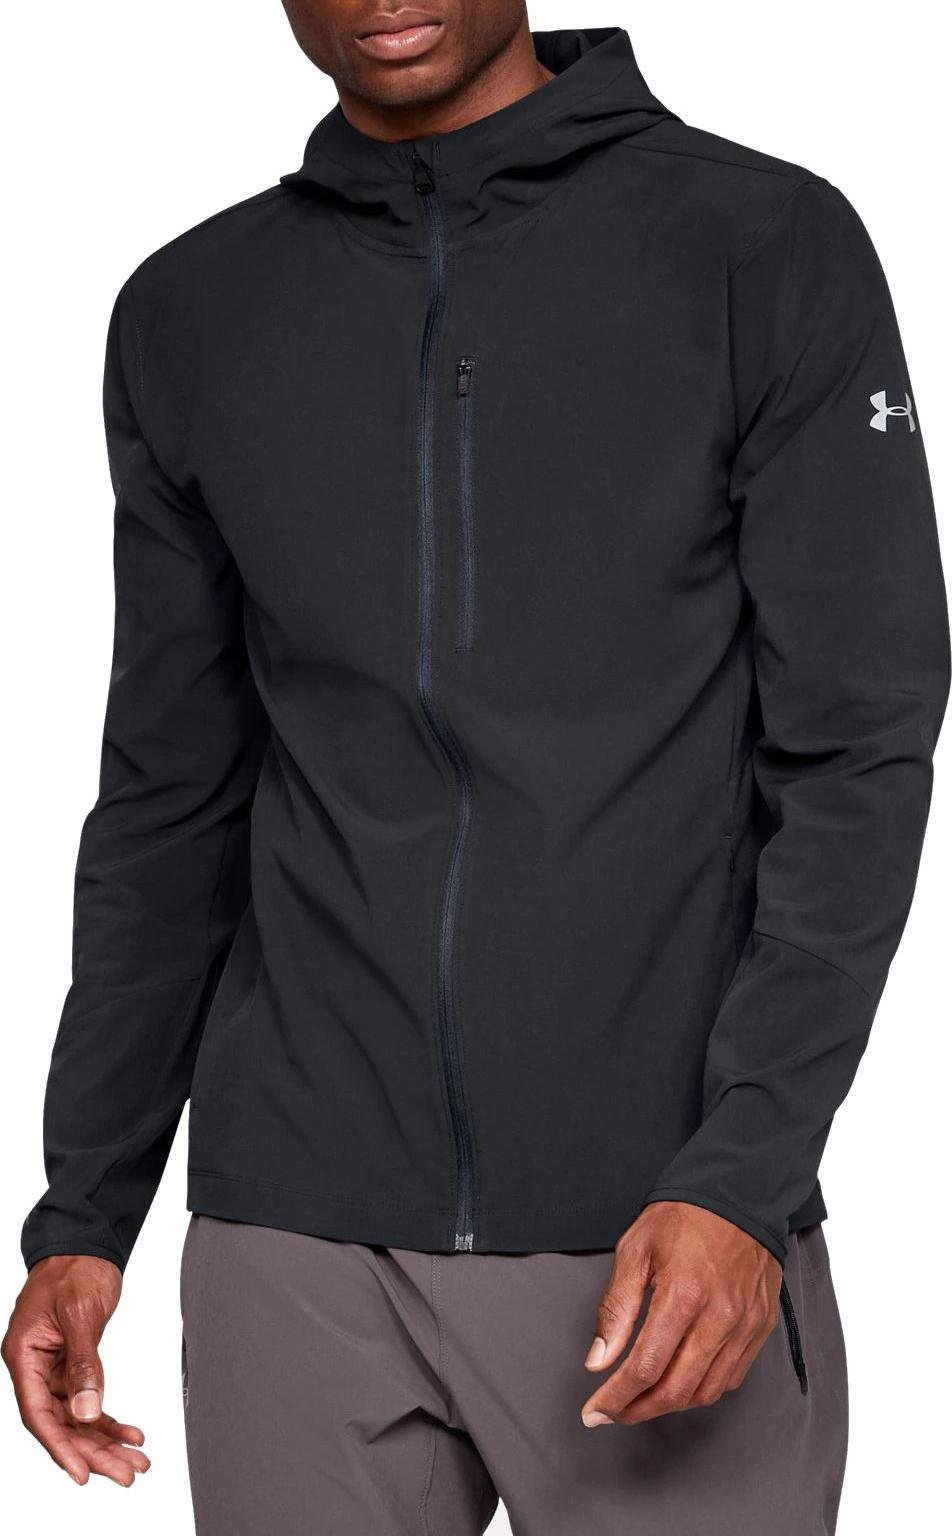 Hooded jacket Under Armour OUTRUN THE STORM JACKET v2